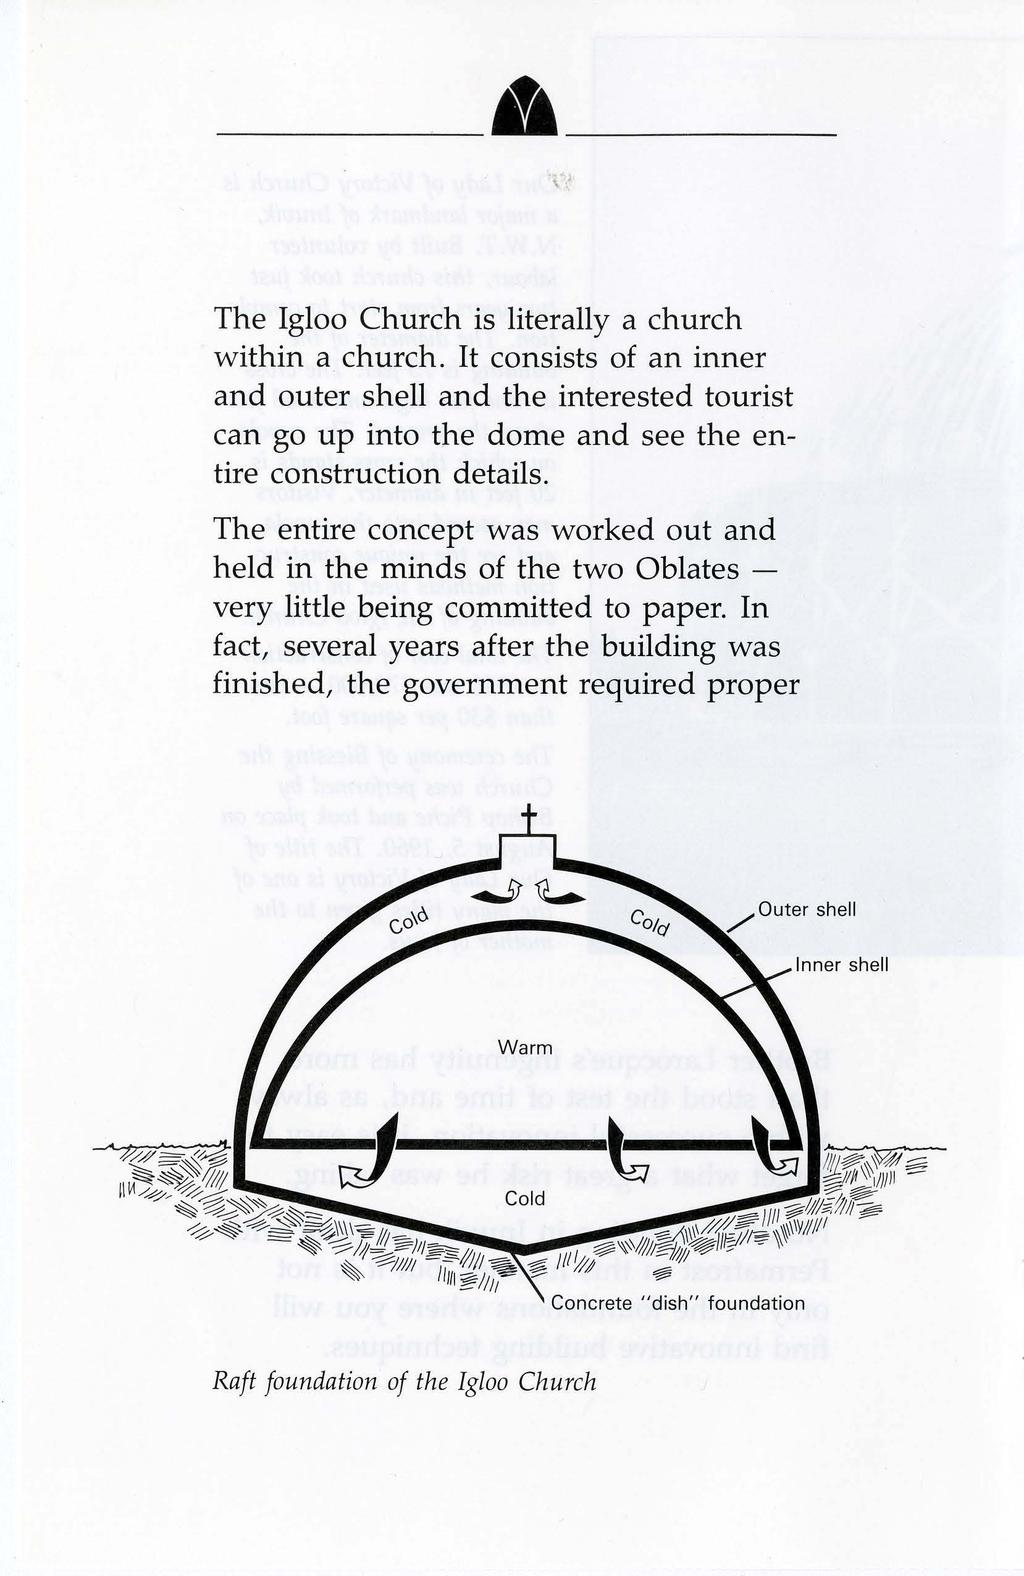 "--~""--- The Igloo Church is literally a church within a church. It consists of an inner and outer shell and the interested tourist can go up into the dome and see the entire construction details."